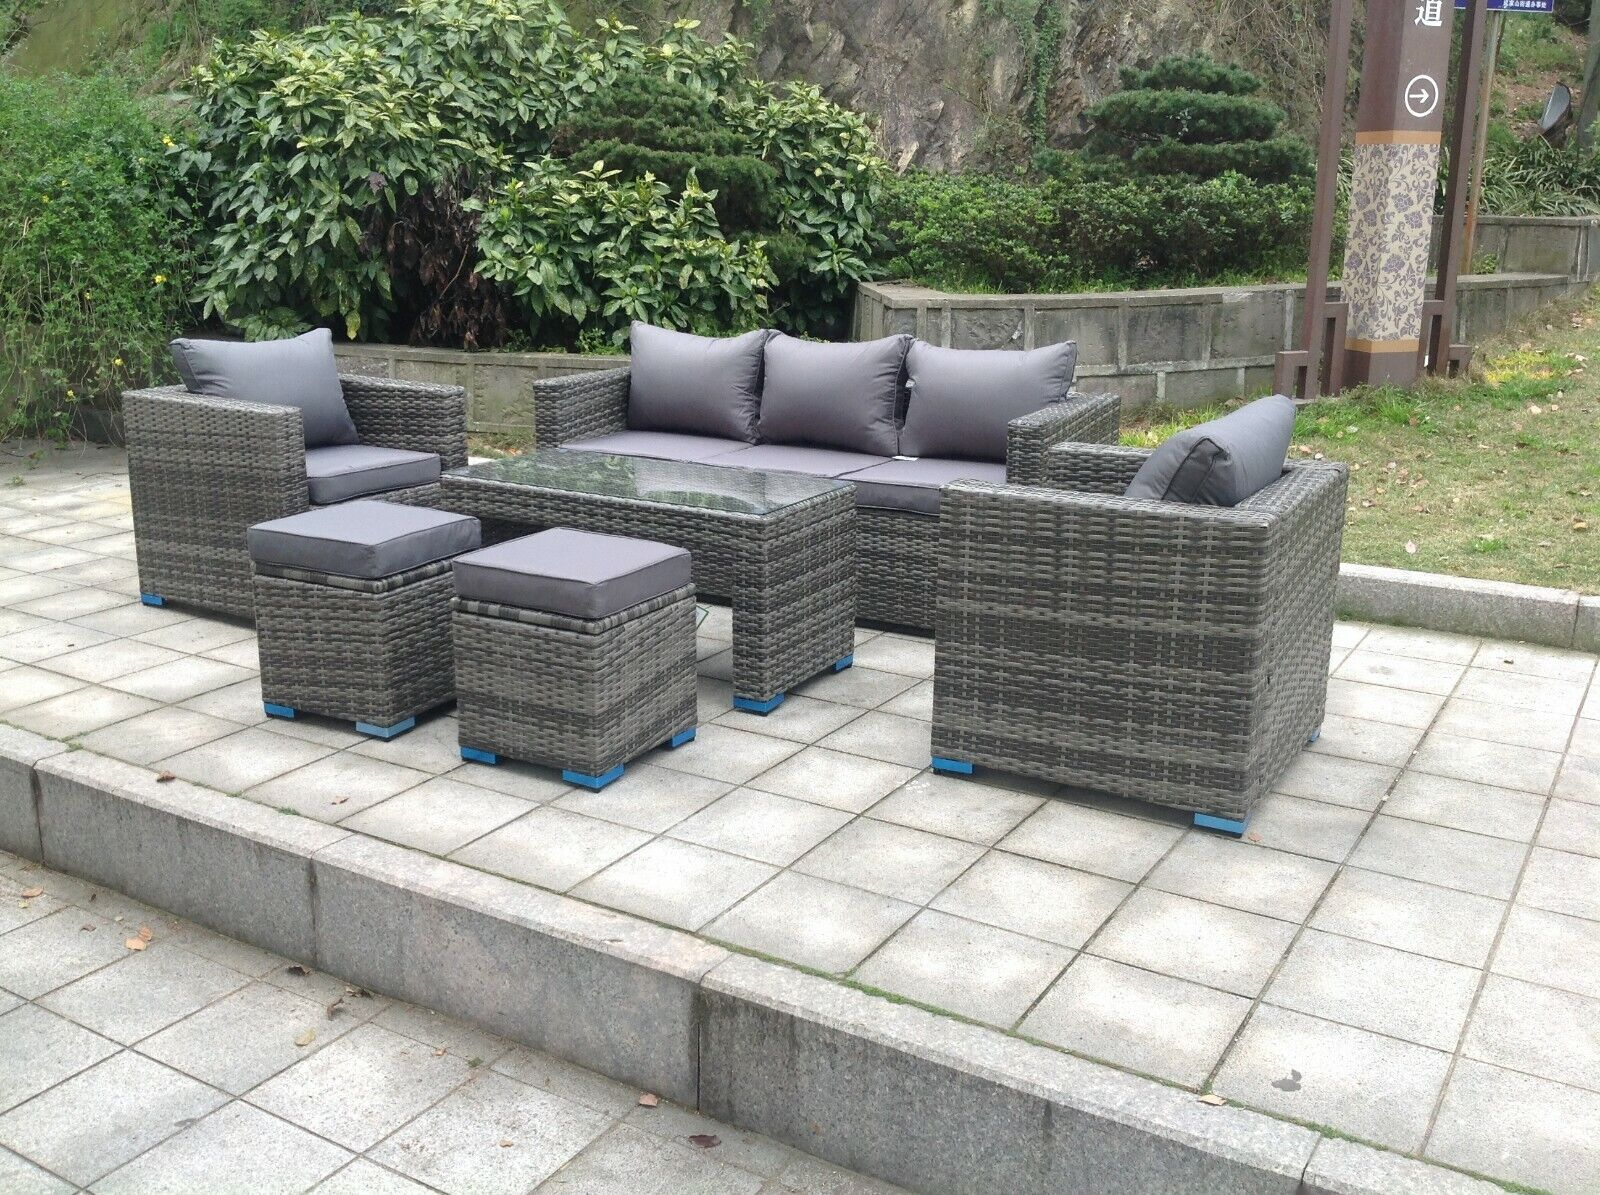 Garden Furniture - Wicker Rattan Garden Furniture Sofa Sets Outdoor Patio Coffee Table With Stools